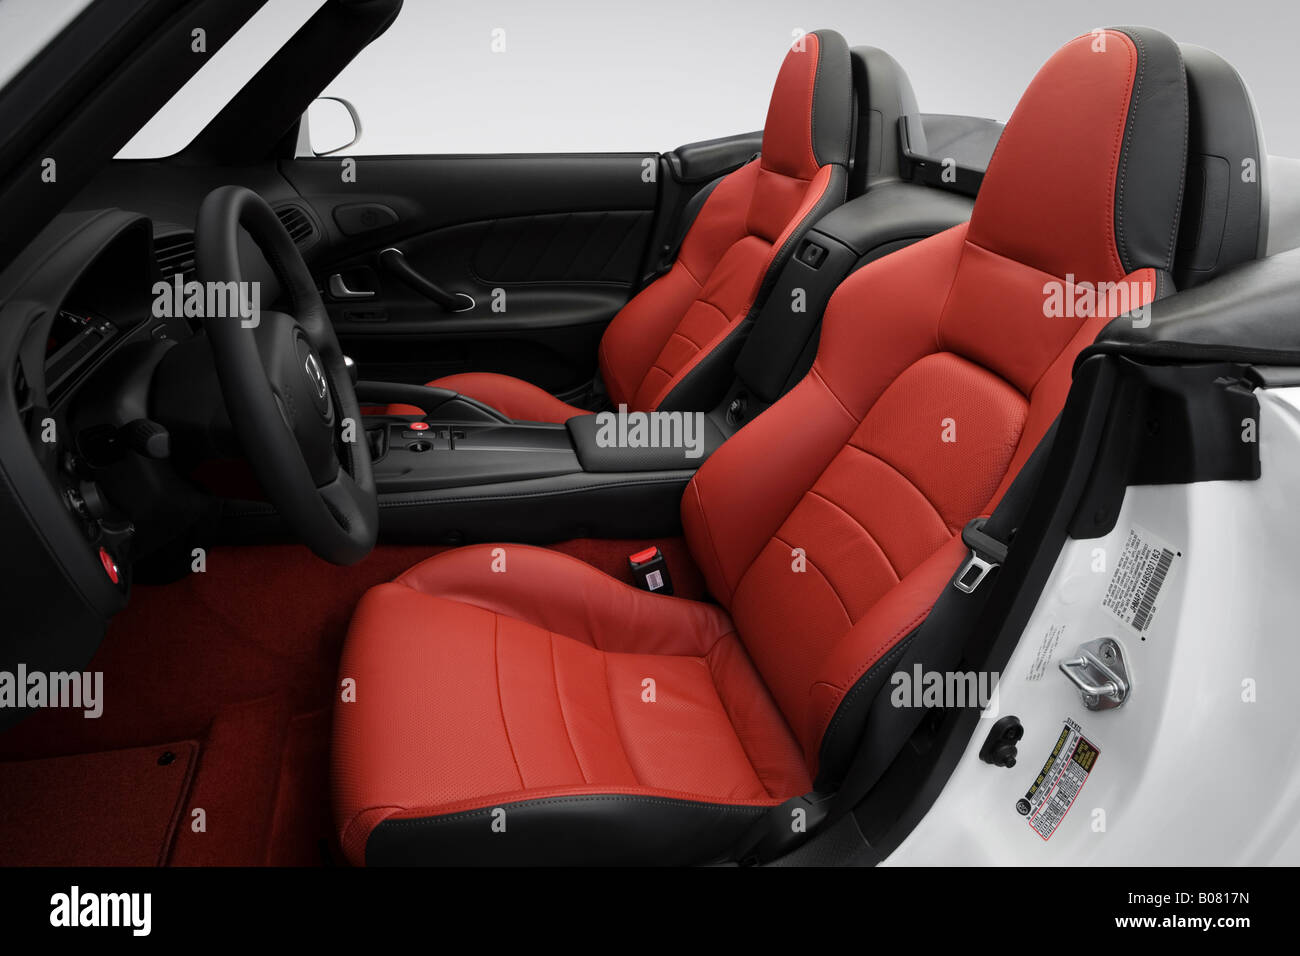 Honda S In White Front Seats Stock Photo Royalty Free - 2008 s2000